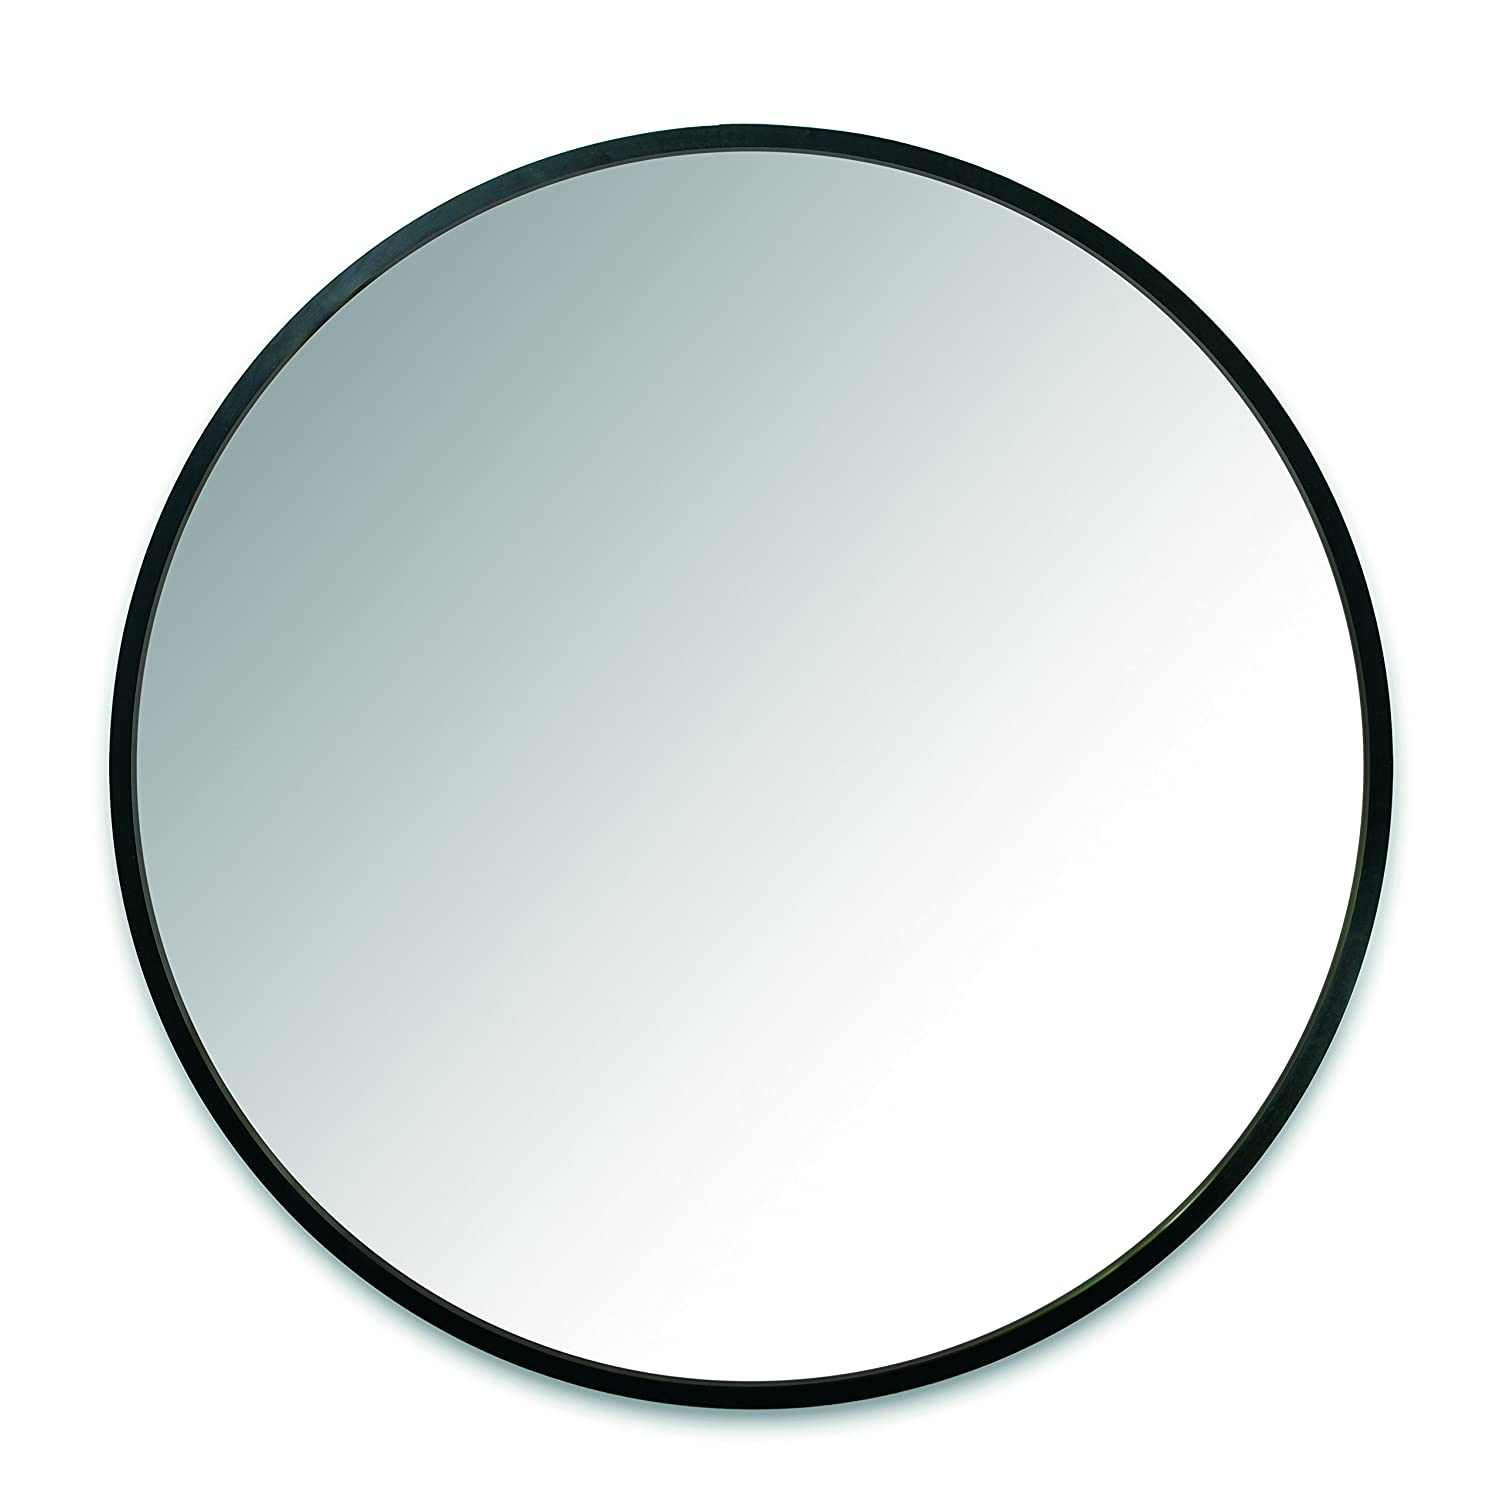 Umbra Hub Wall Mirror With Rubber Frame - 37-Inch Round Wall Mirror for Entryways, Washrooms, Living Rooms and More, Doubles as Modern Wall Art, Black